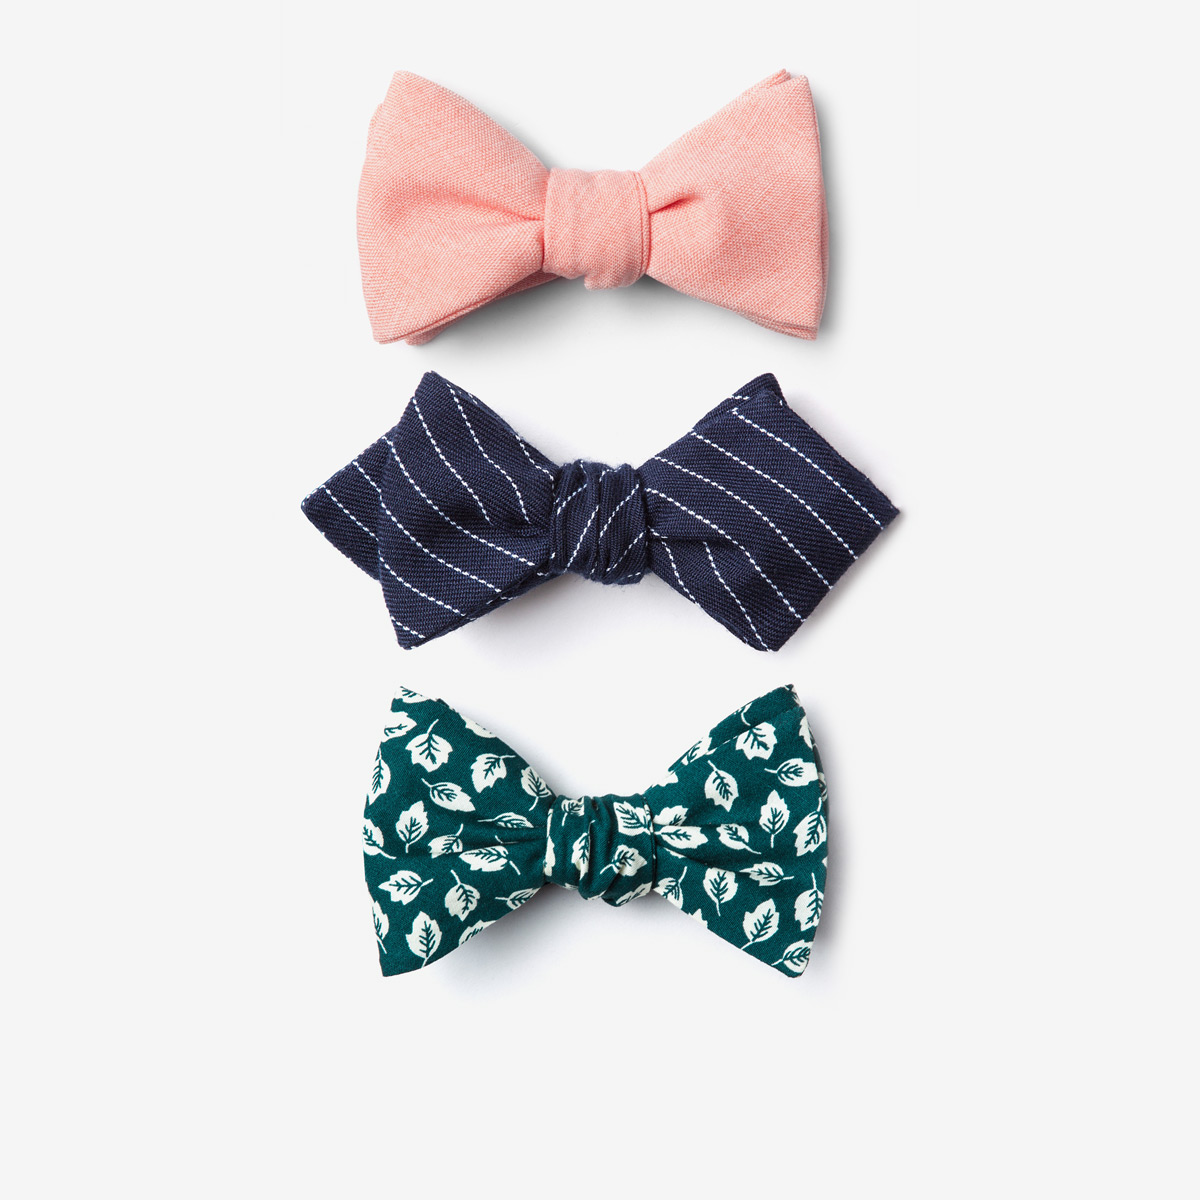 Bow Ties 101 - An Introduction to Bow Ties